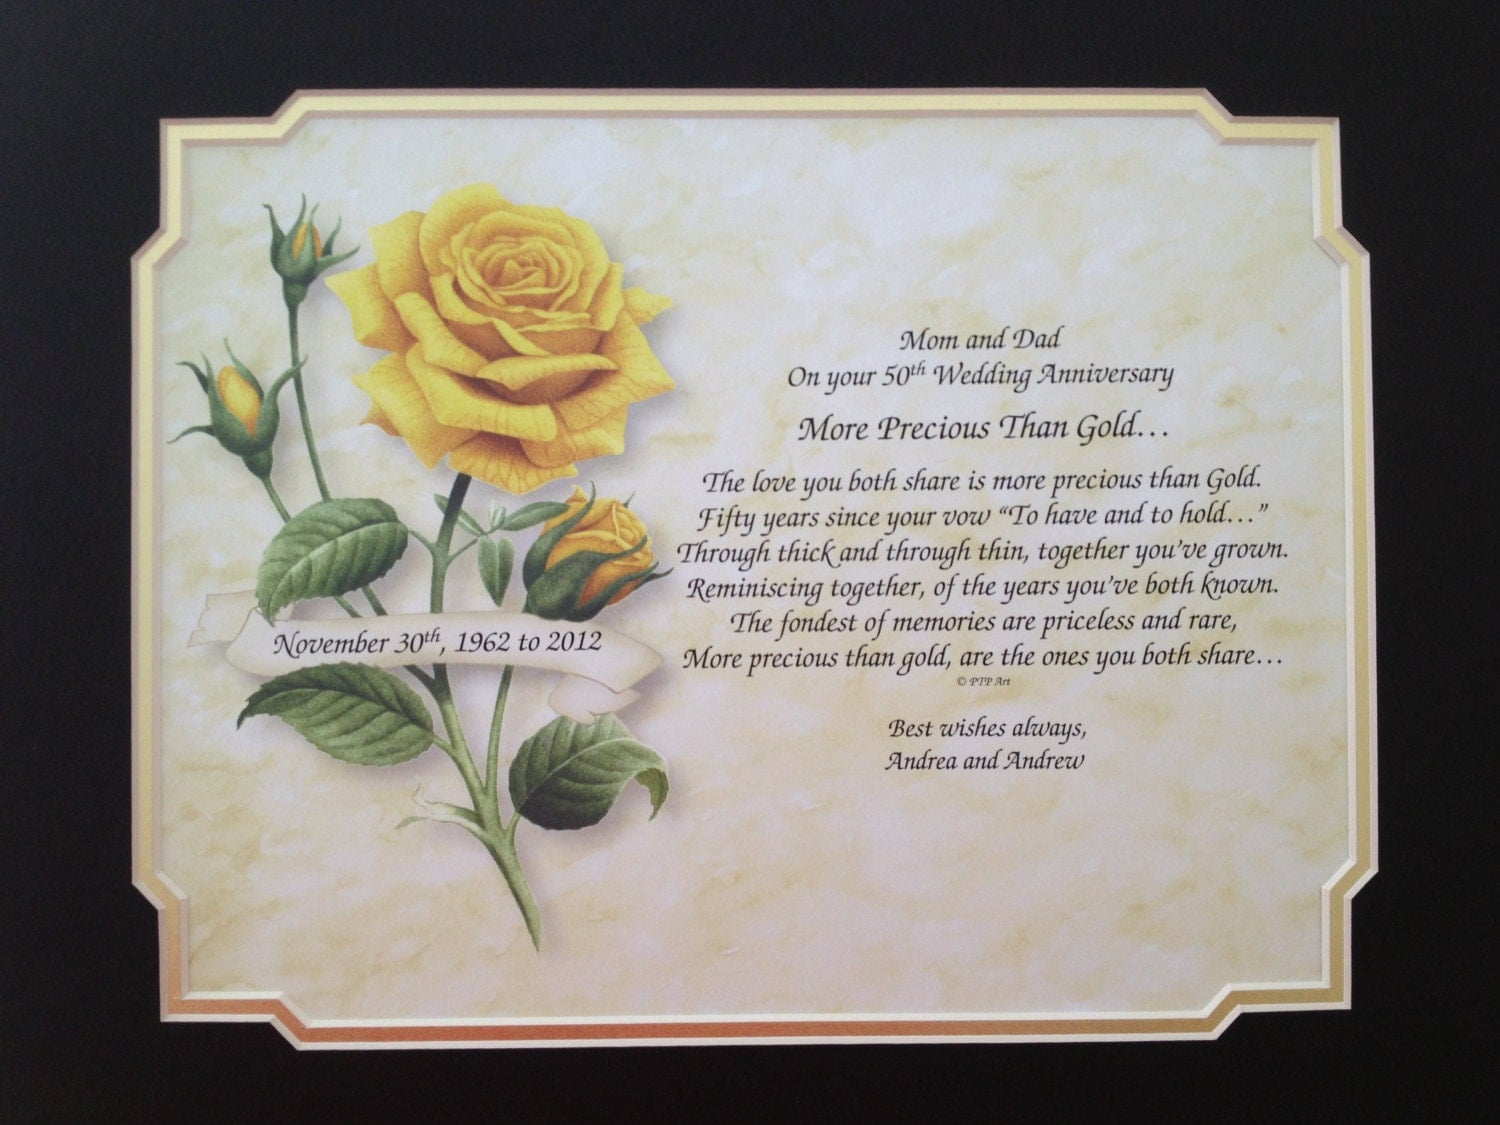 60th Wedding Anniversary Gifts For Parents: 50th ANNIVERSARY Gift Idea Personalized Poem By